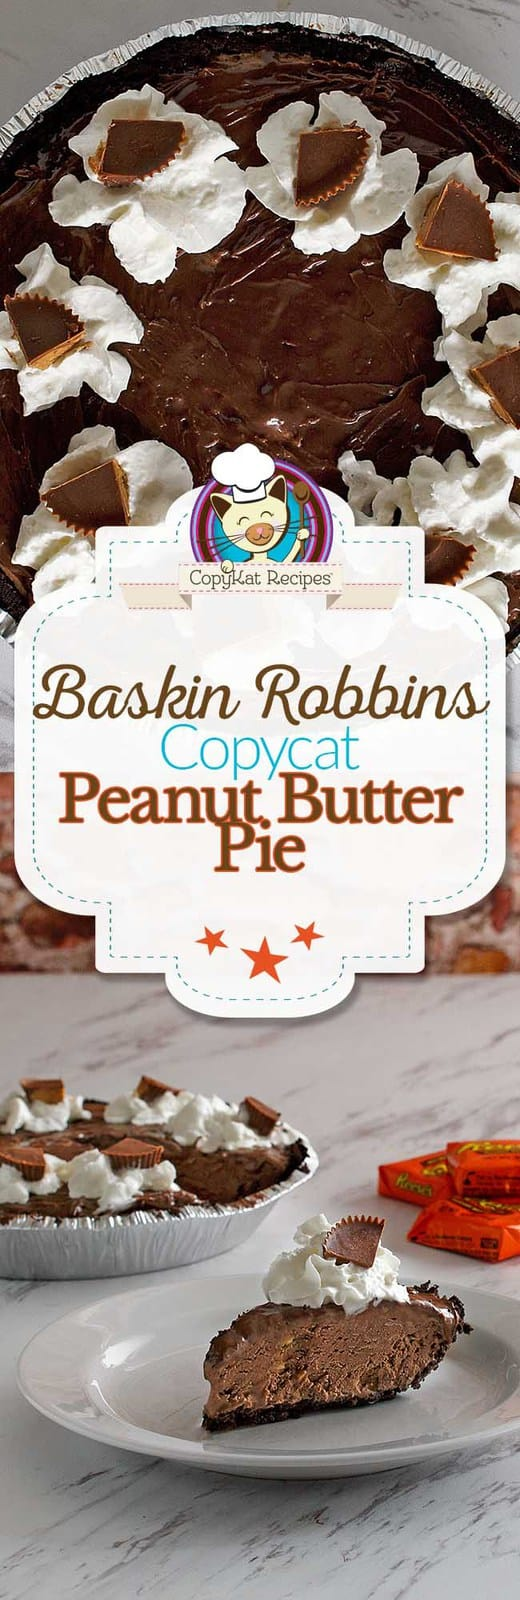 Make your own Baskin Robbin's Peanut Butter Pie at home.  Everyone loves this ice cream dessert recipe.